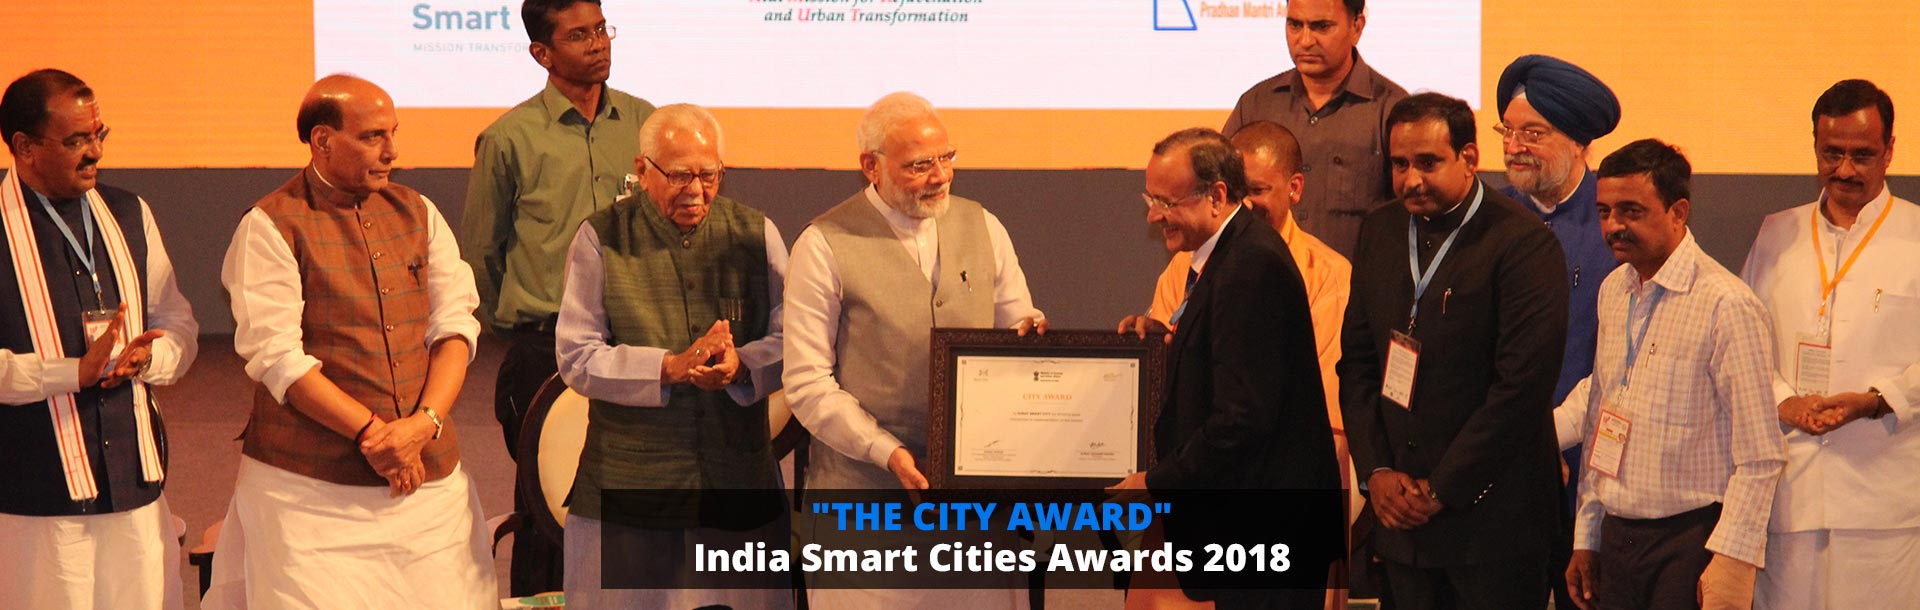 The City Award - India Smart Cities Awards 2018